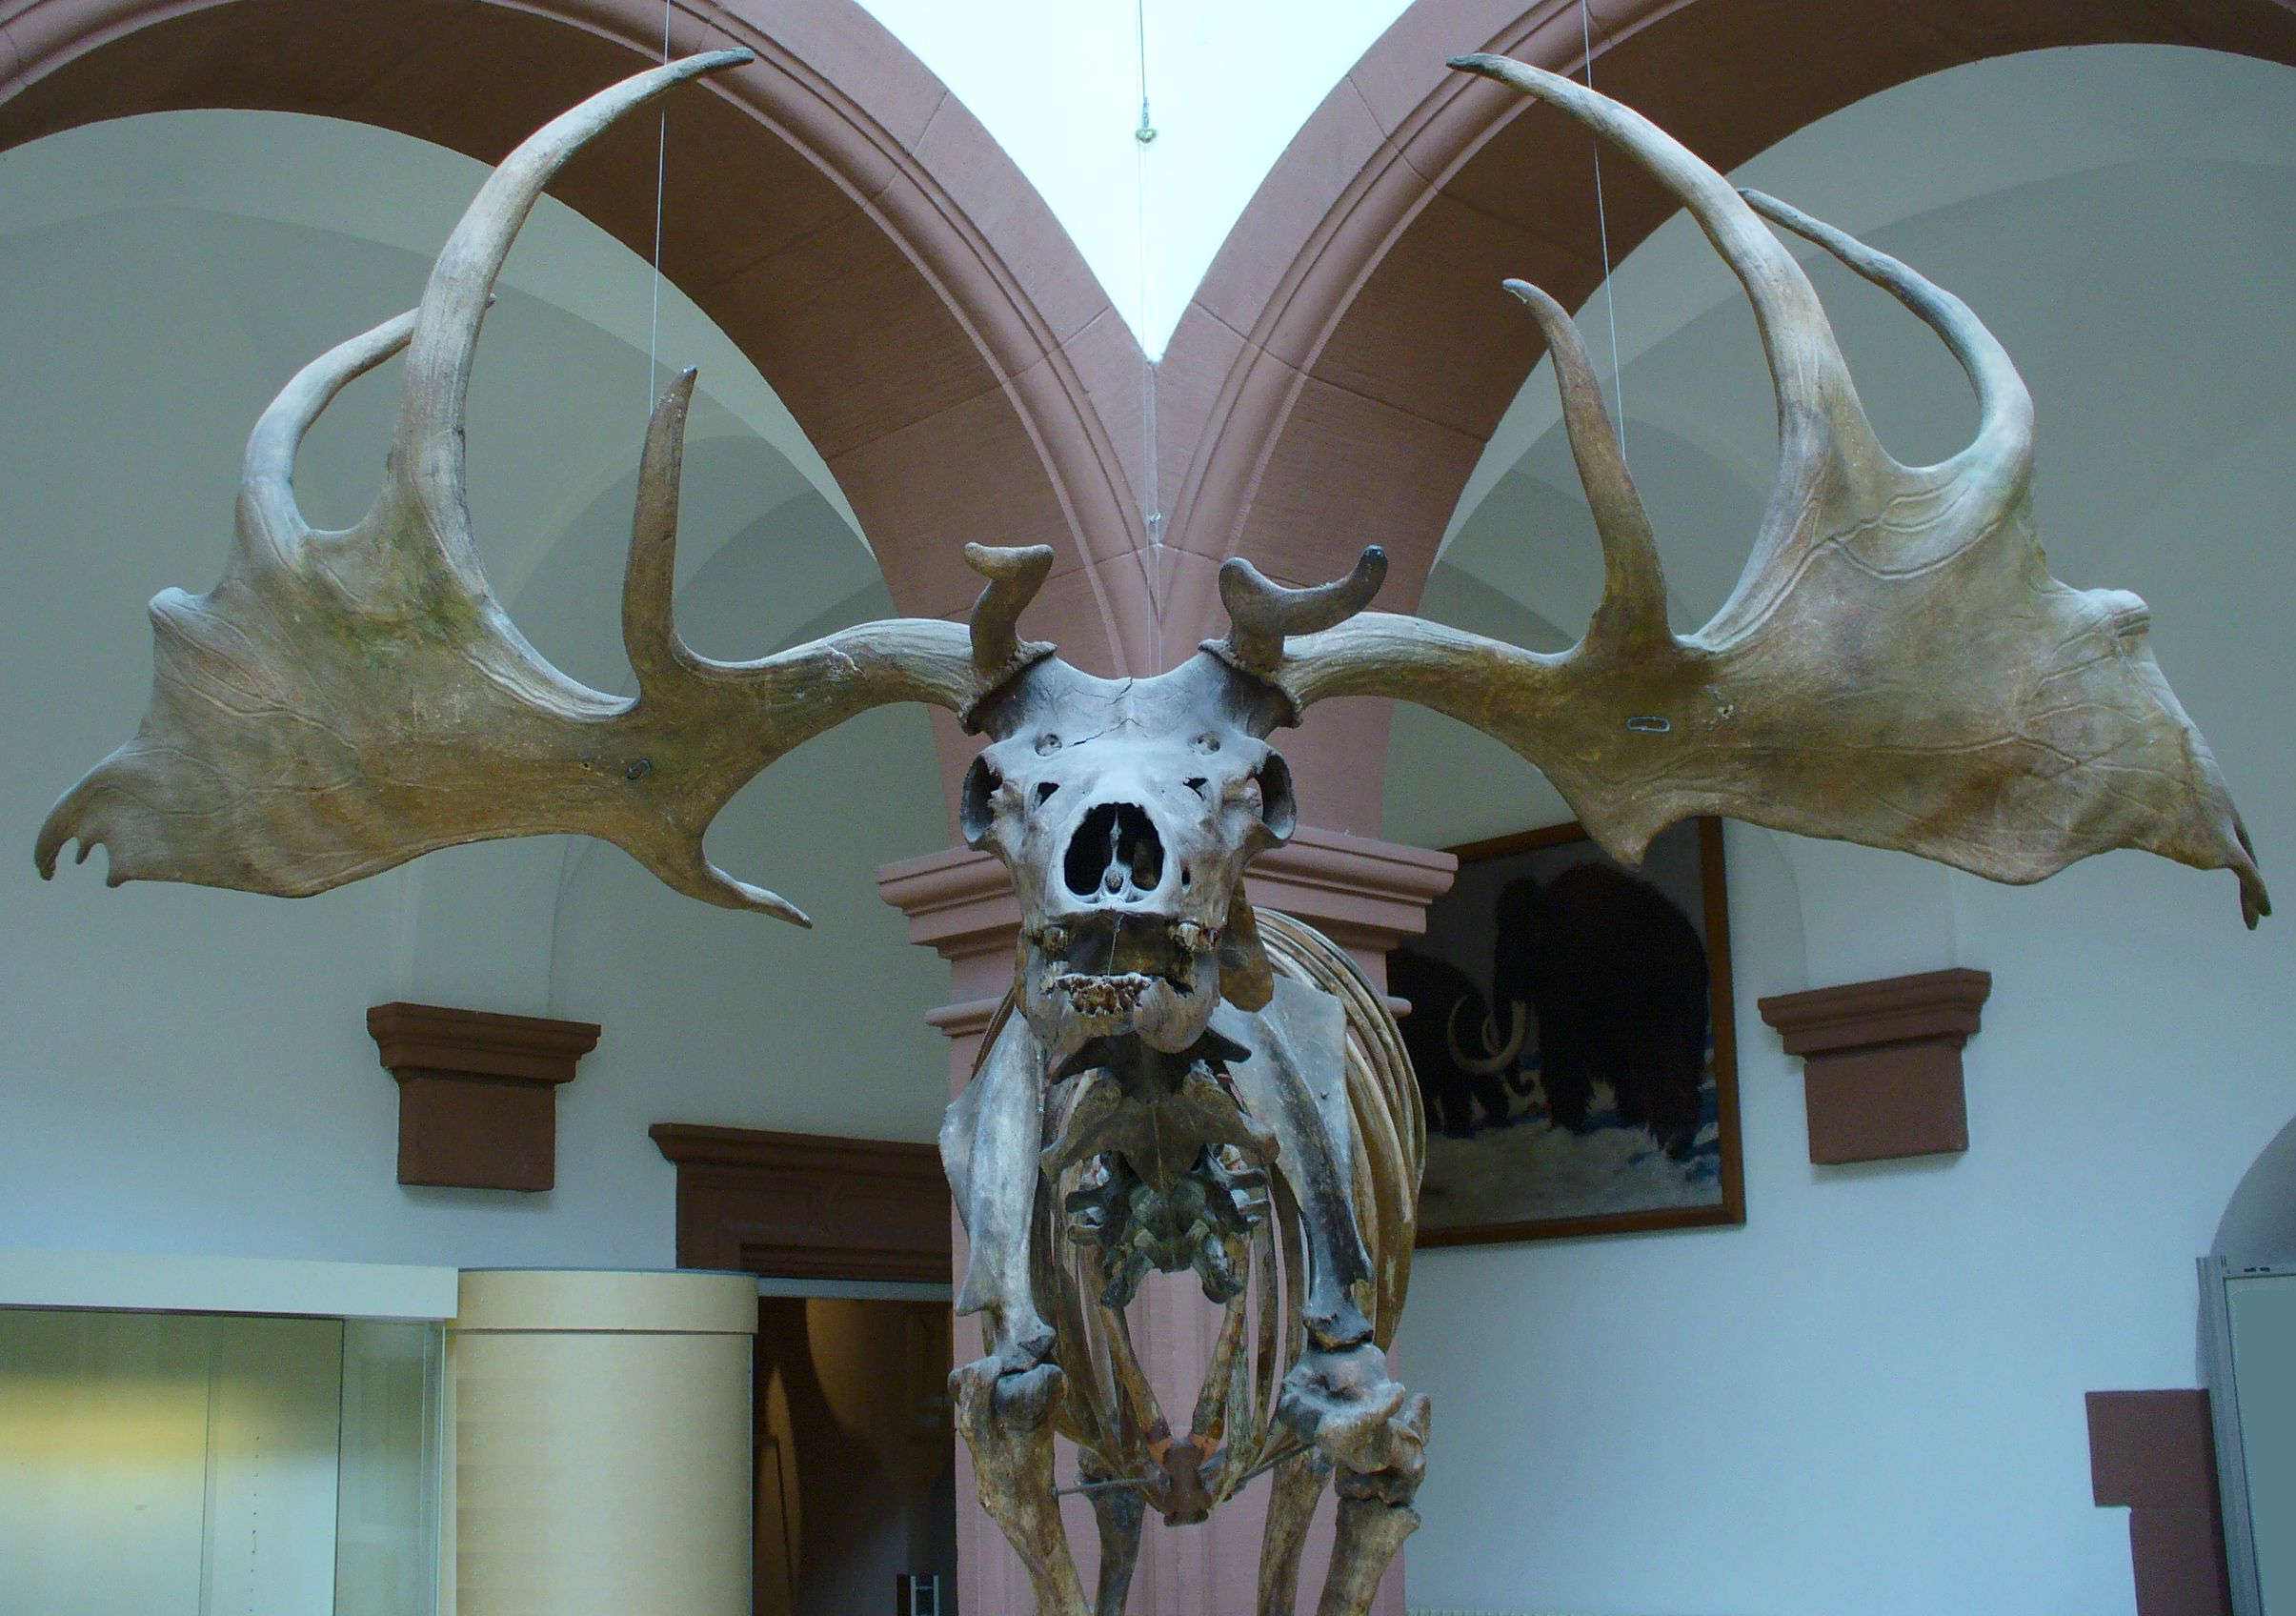 File:Irish Elk front.jpg - Wikimedia Commons